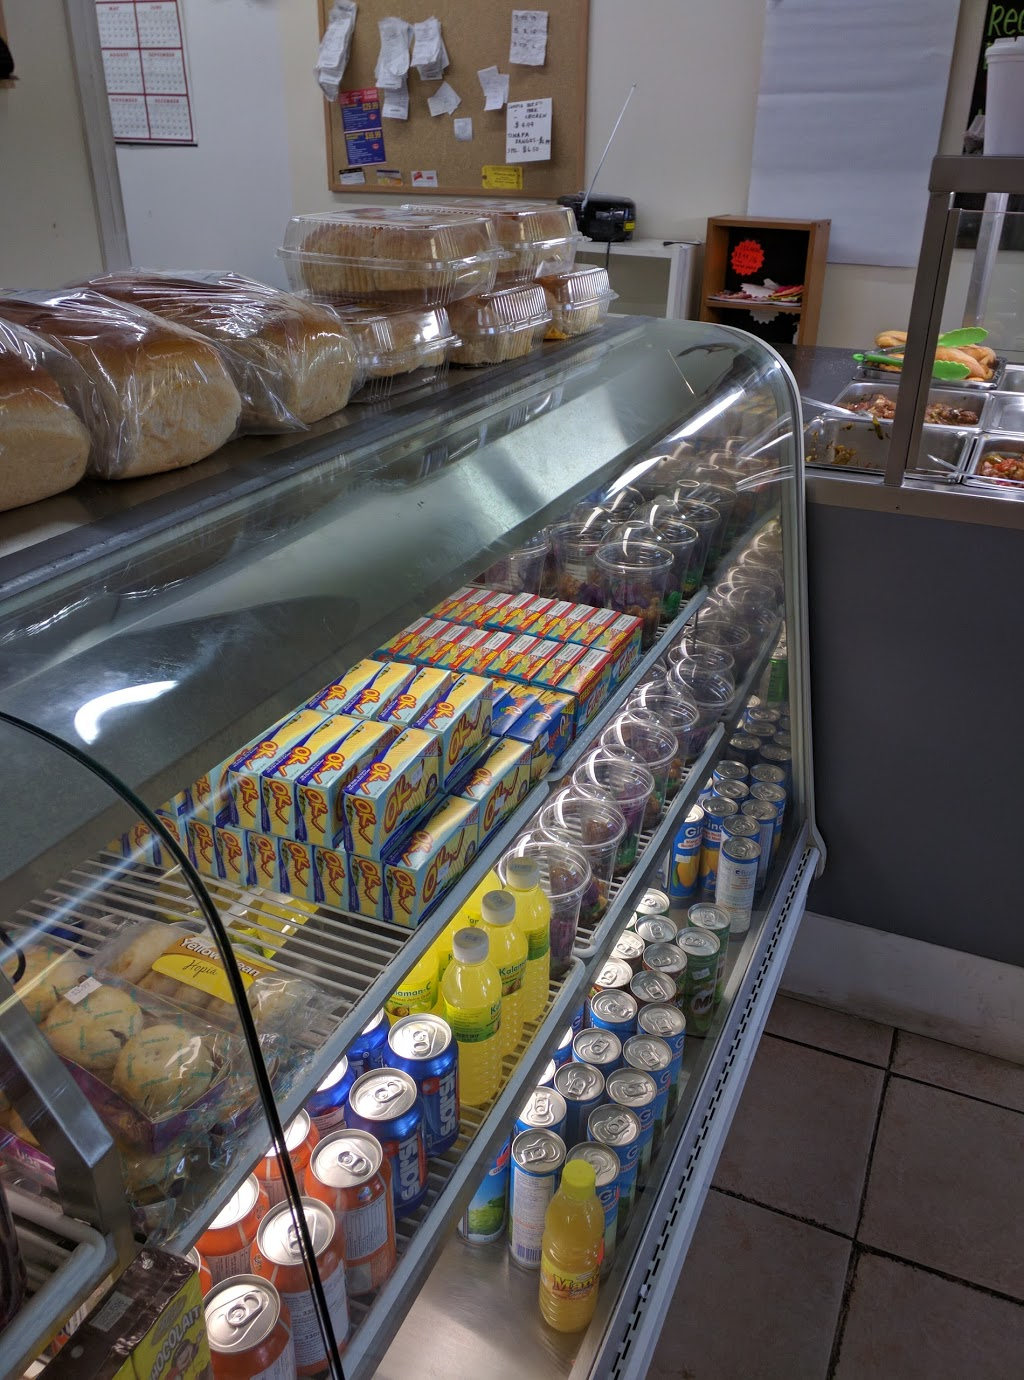 Bellas Pinoy Bakery | store | 105 Kennedy Rd S, Brampton, ON L6W 3G2, Canada | 9055981000 OR +1 905-598-1000